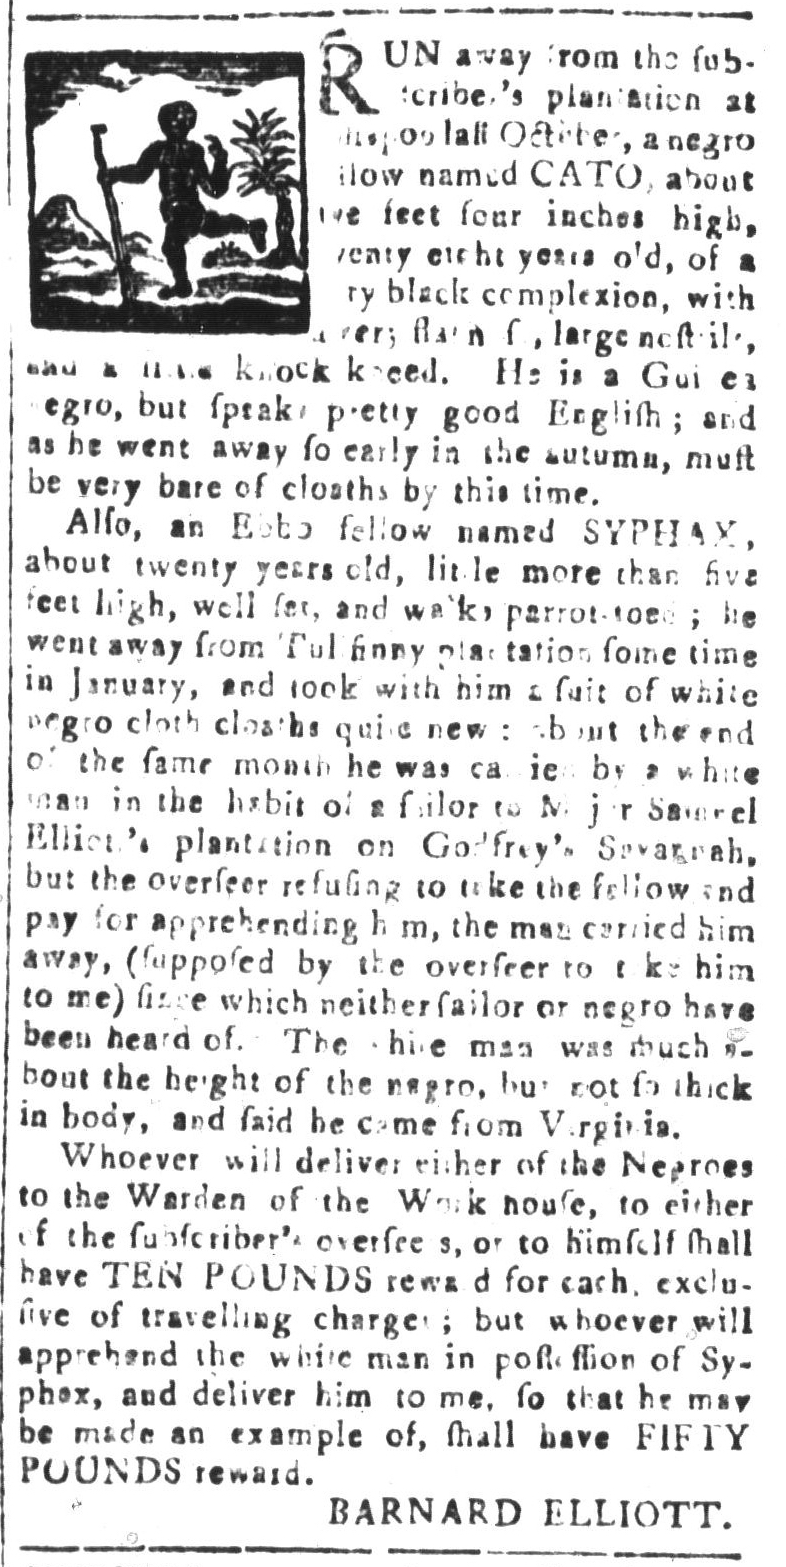 Apr 29 - South-Carolina and American General Gazette Slavery 11